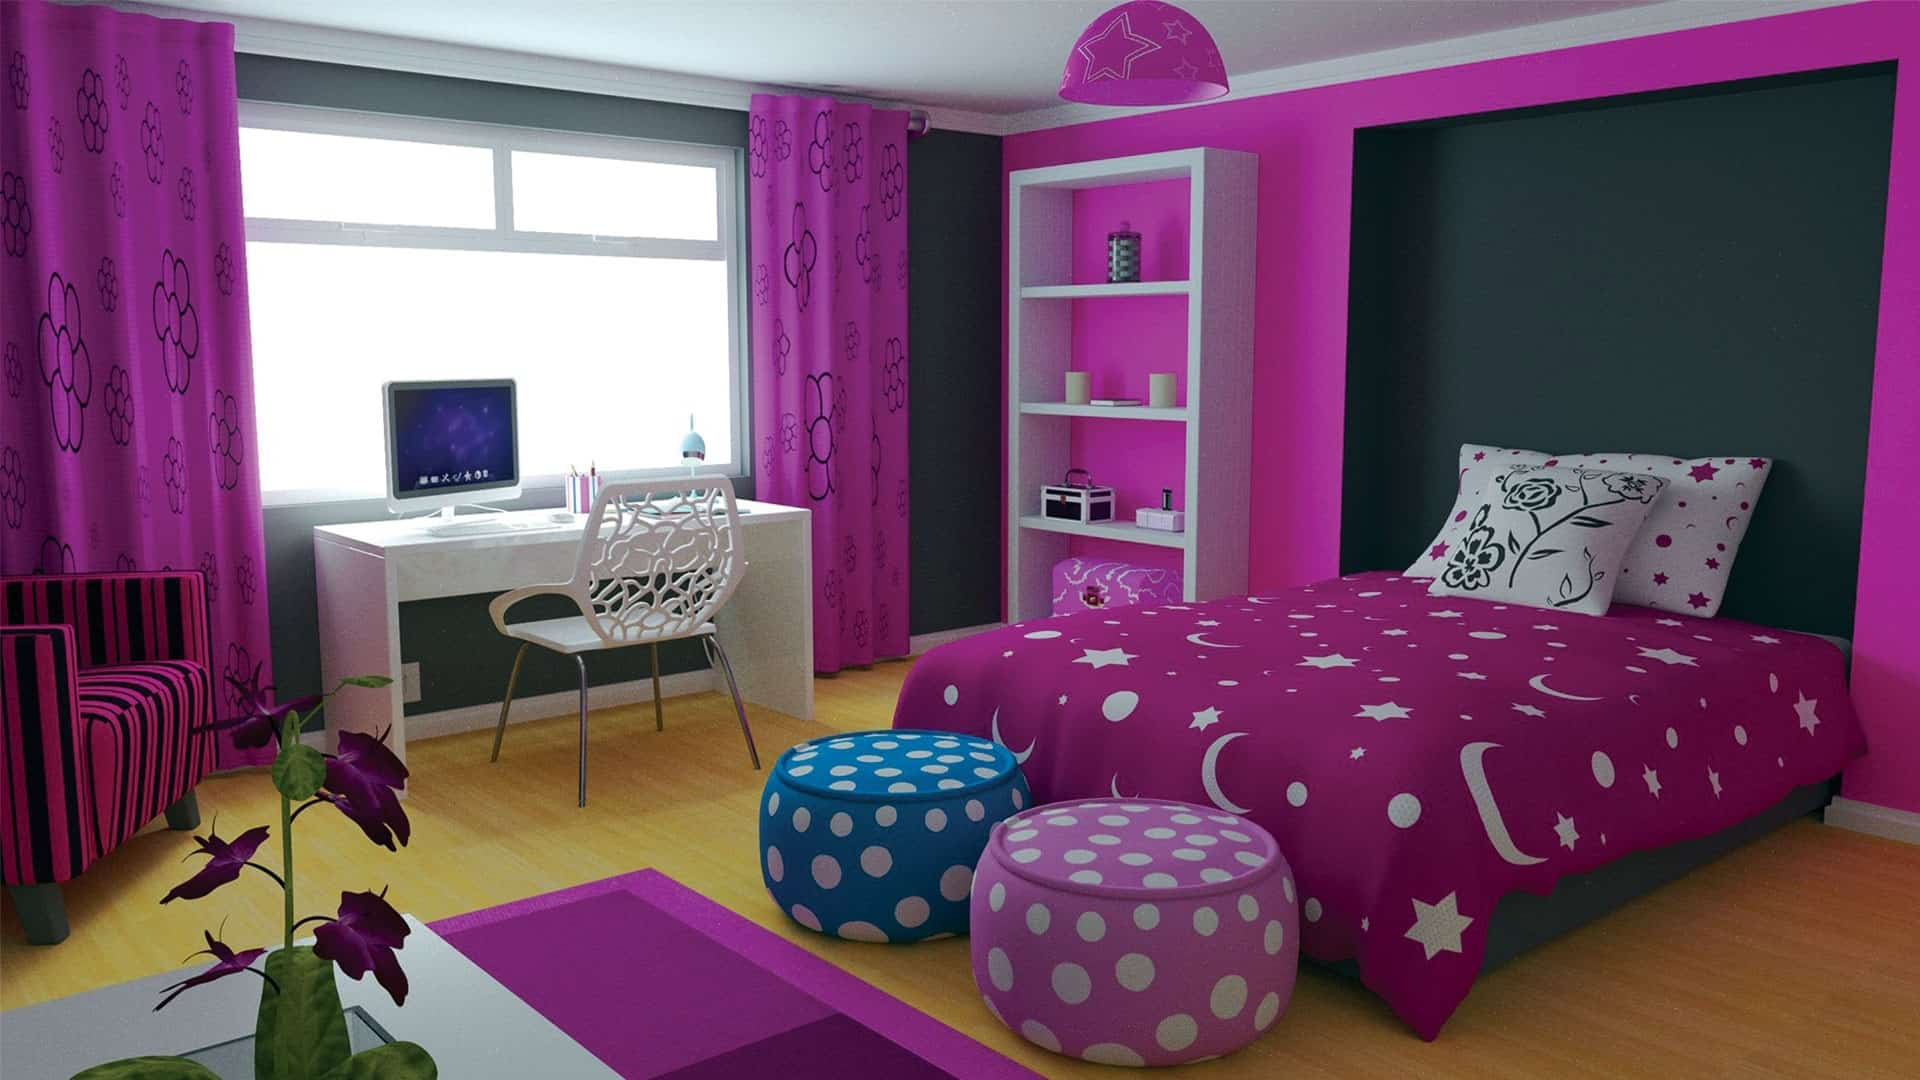 Home decor trends 2017 purple teen room for Bedroom ideas for teen girl